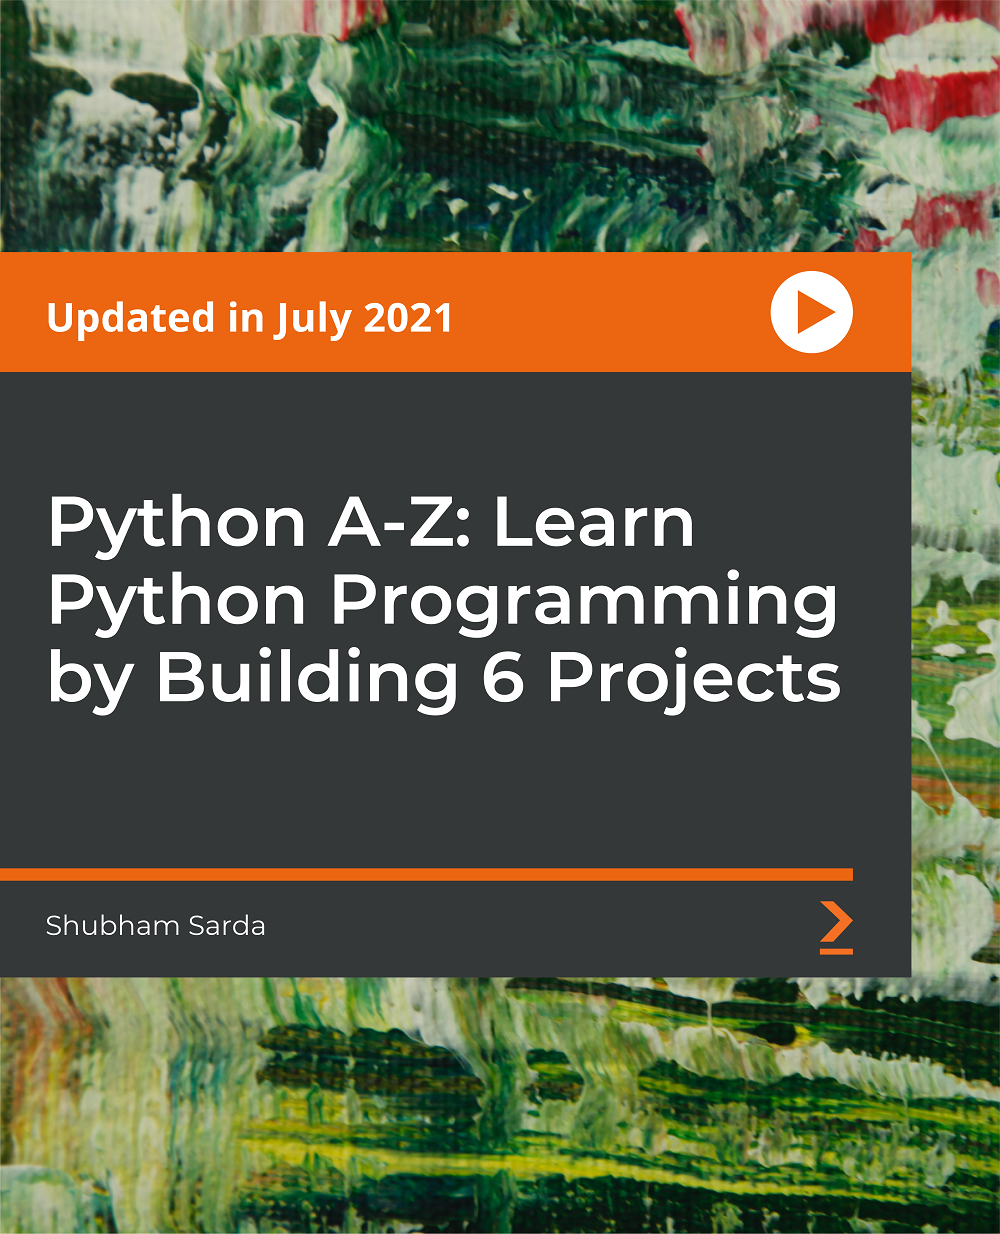 Python A-Z - Learn Python Programming By Building 5 Projects [Video]